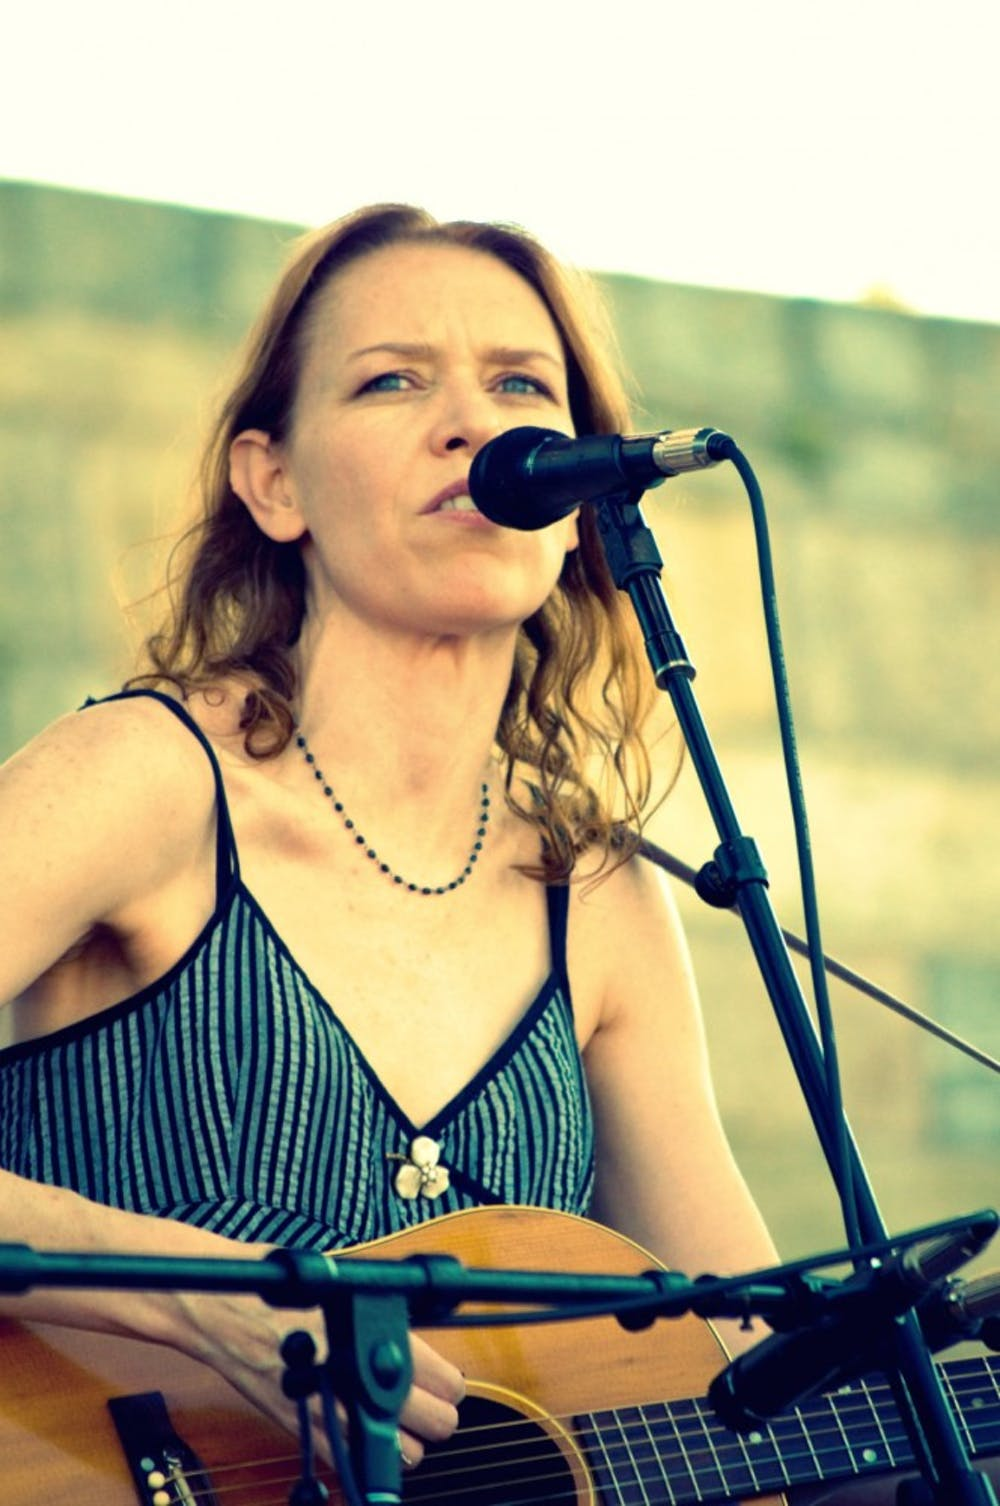 Nelsonville Music Festival lineup gets a little louder with Gillian Welch, Lake Street Dive